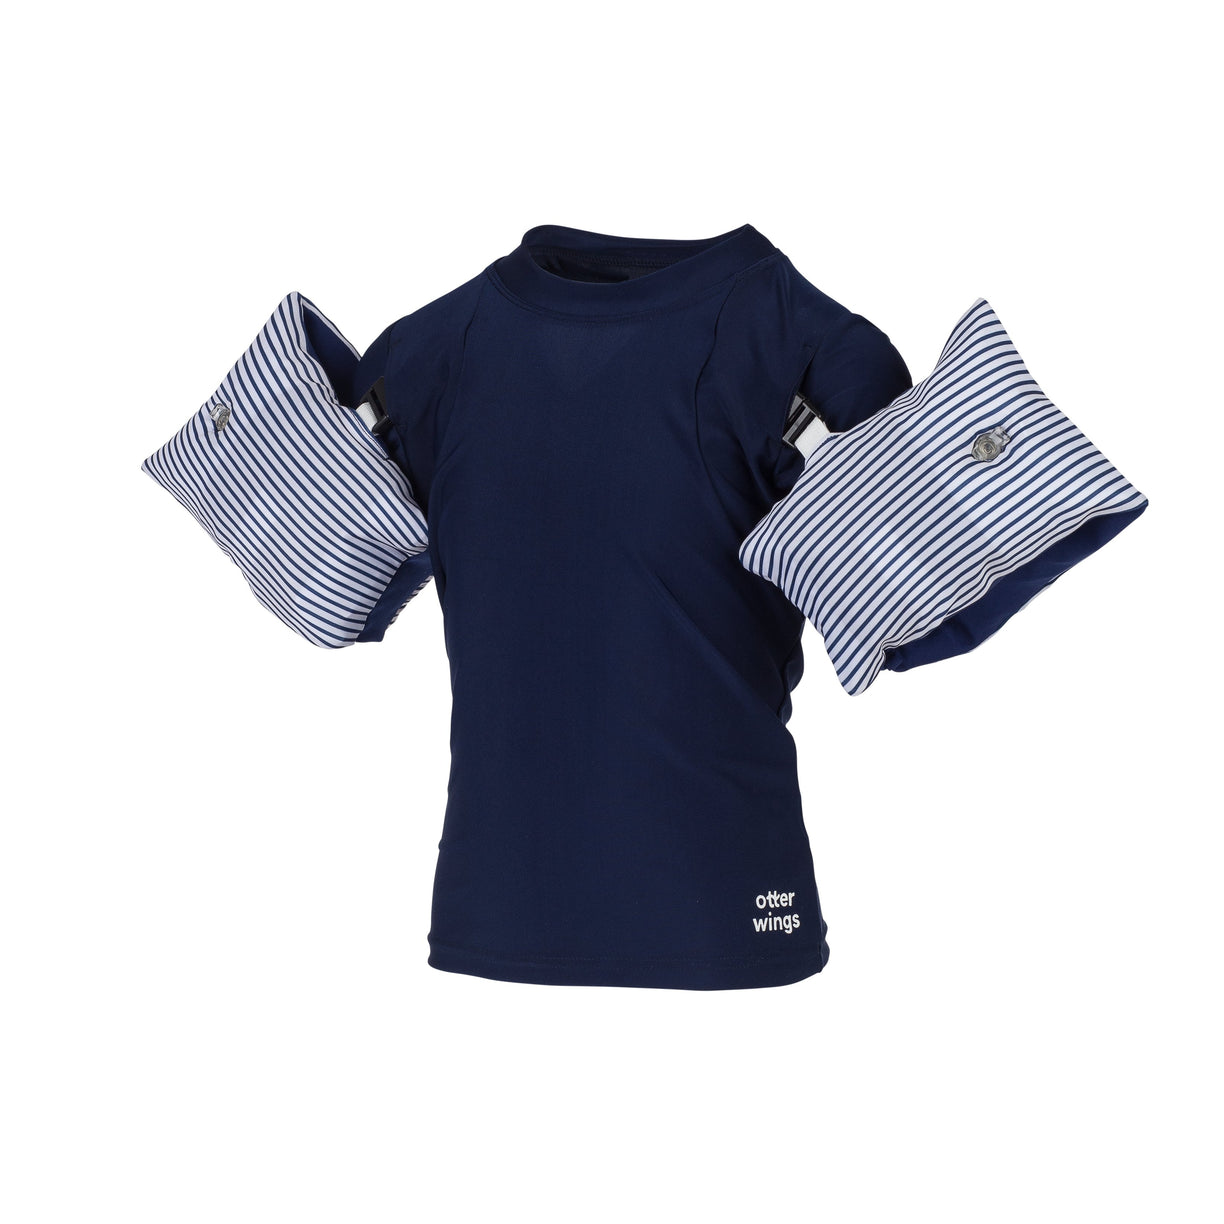 otter wings | Navy Blue | Short Sleeve